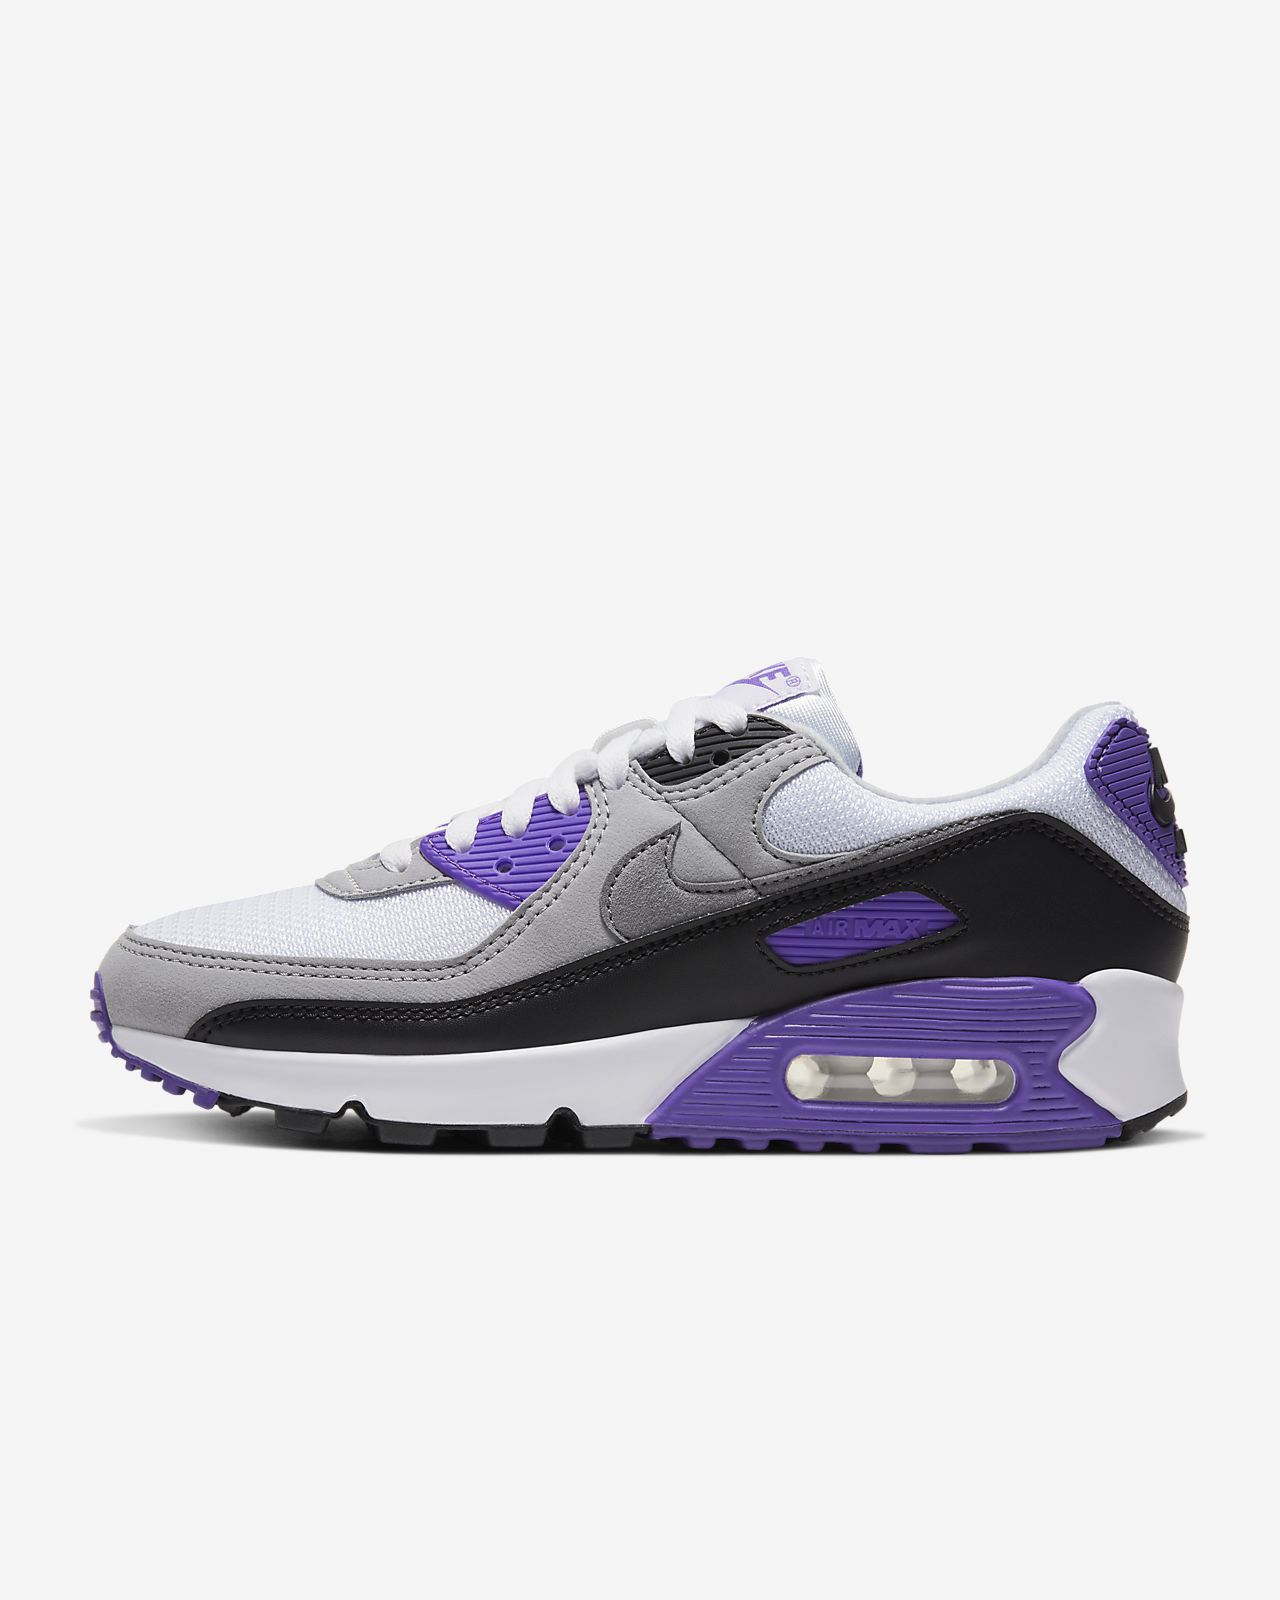 Nike Air Max 90 Classic Retro Running